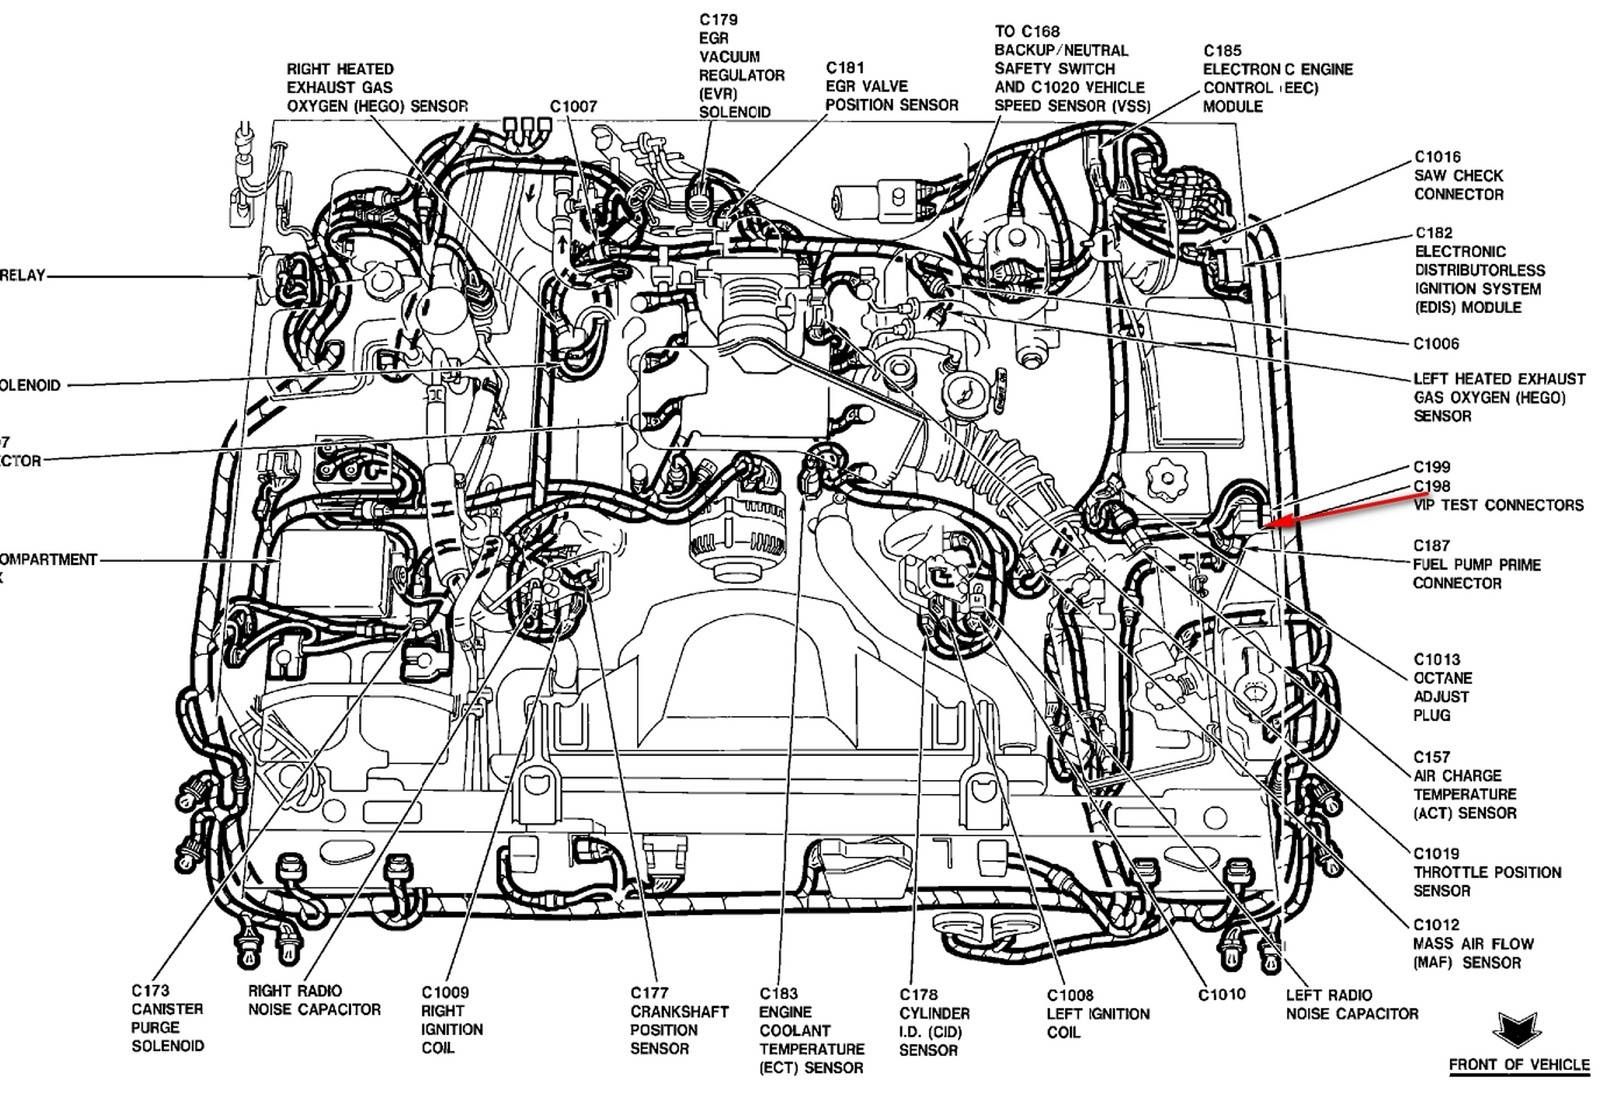 2001 Mustang 3 8 Engine Diagram Wiring Library 2004 Radio 10 Answers